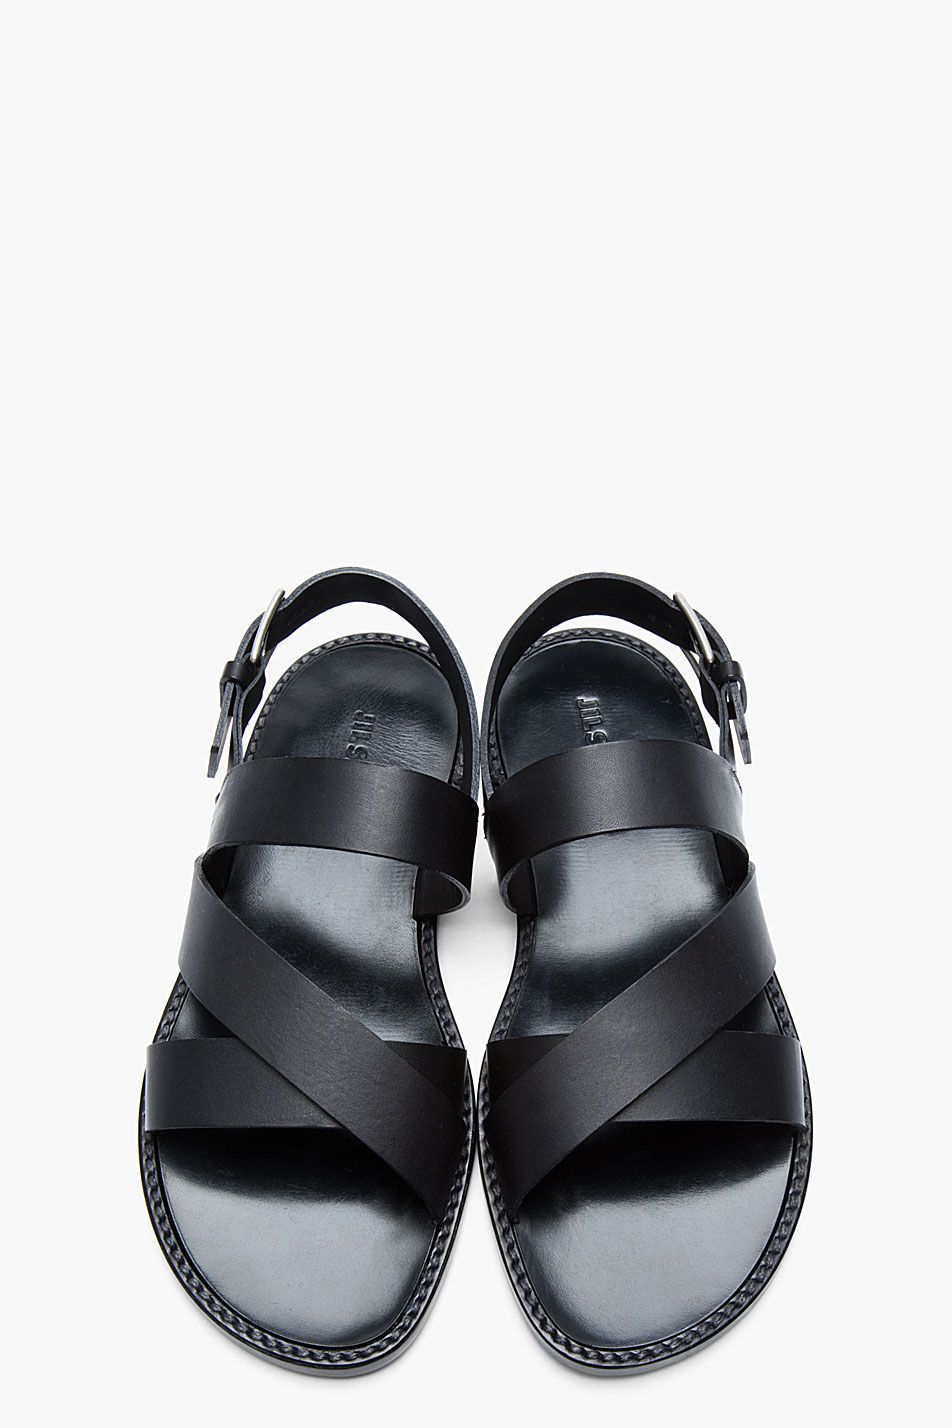 404 Not Found Mens Leather Sandals Leather Strap Sandals Leather Sandals Handmade